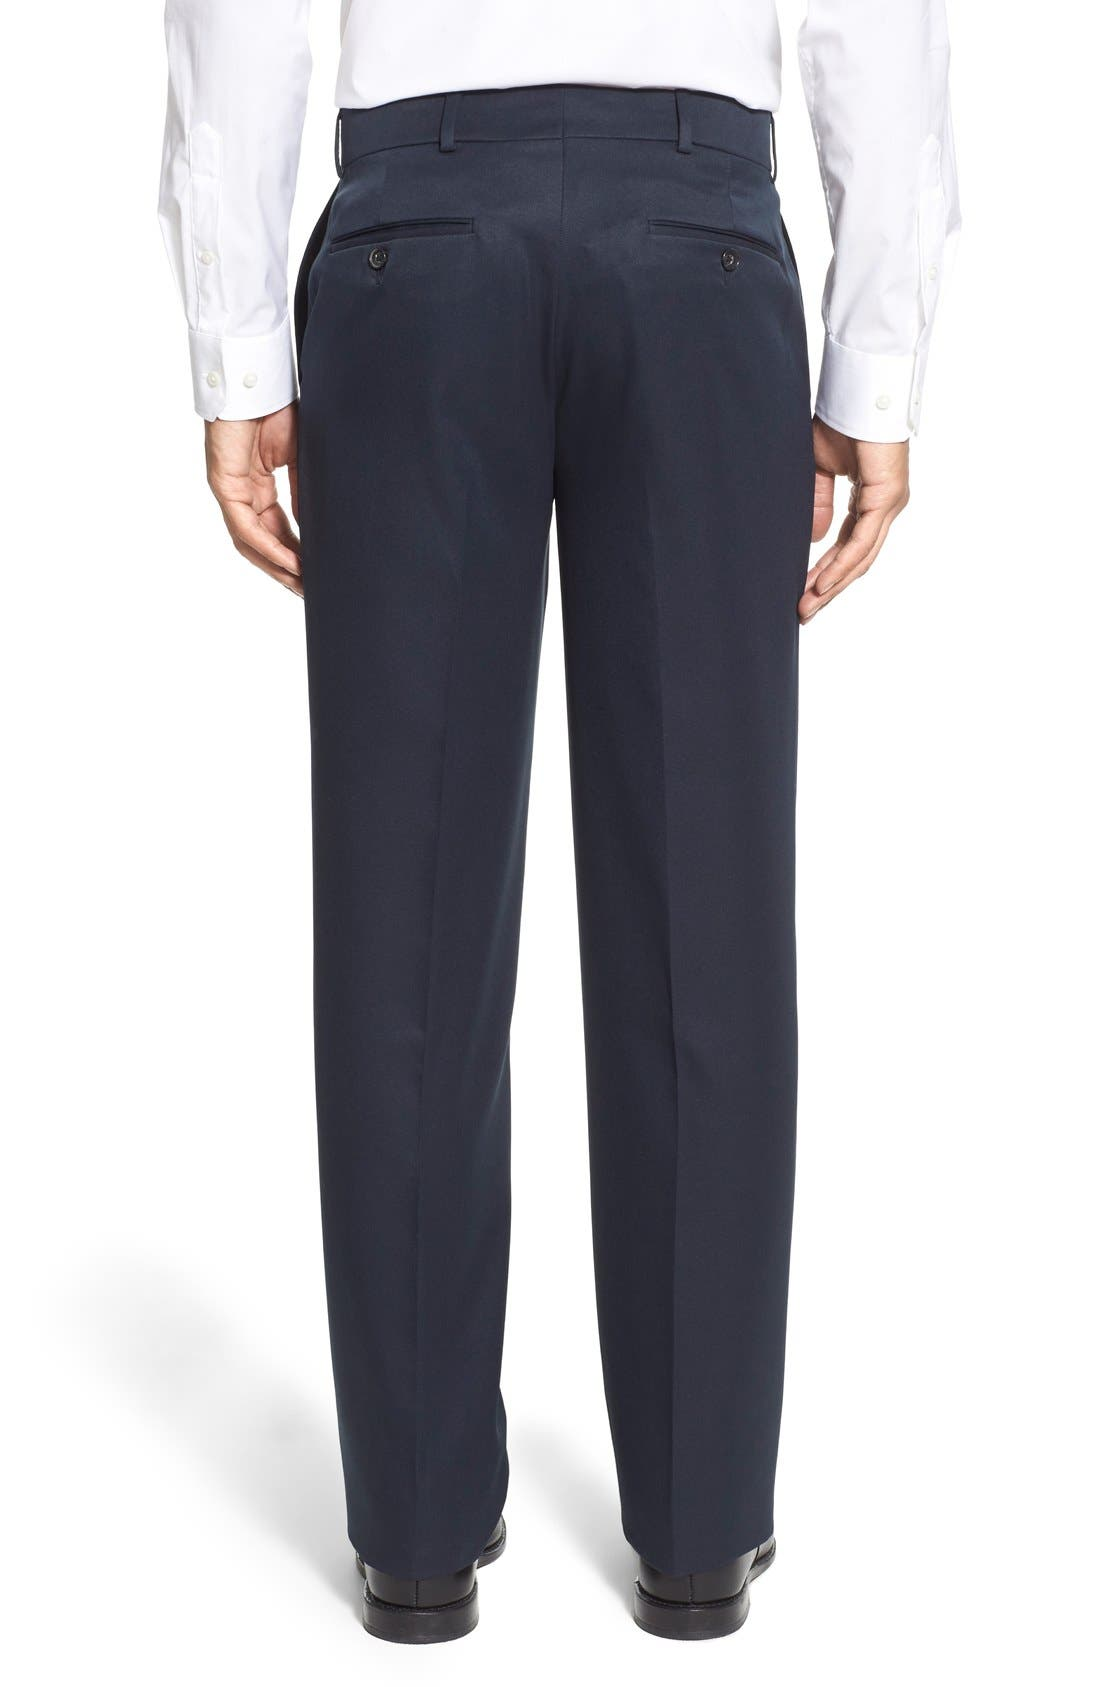 Alternate Image 3  - Ballin Regular Fit Flat Front Trousers